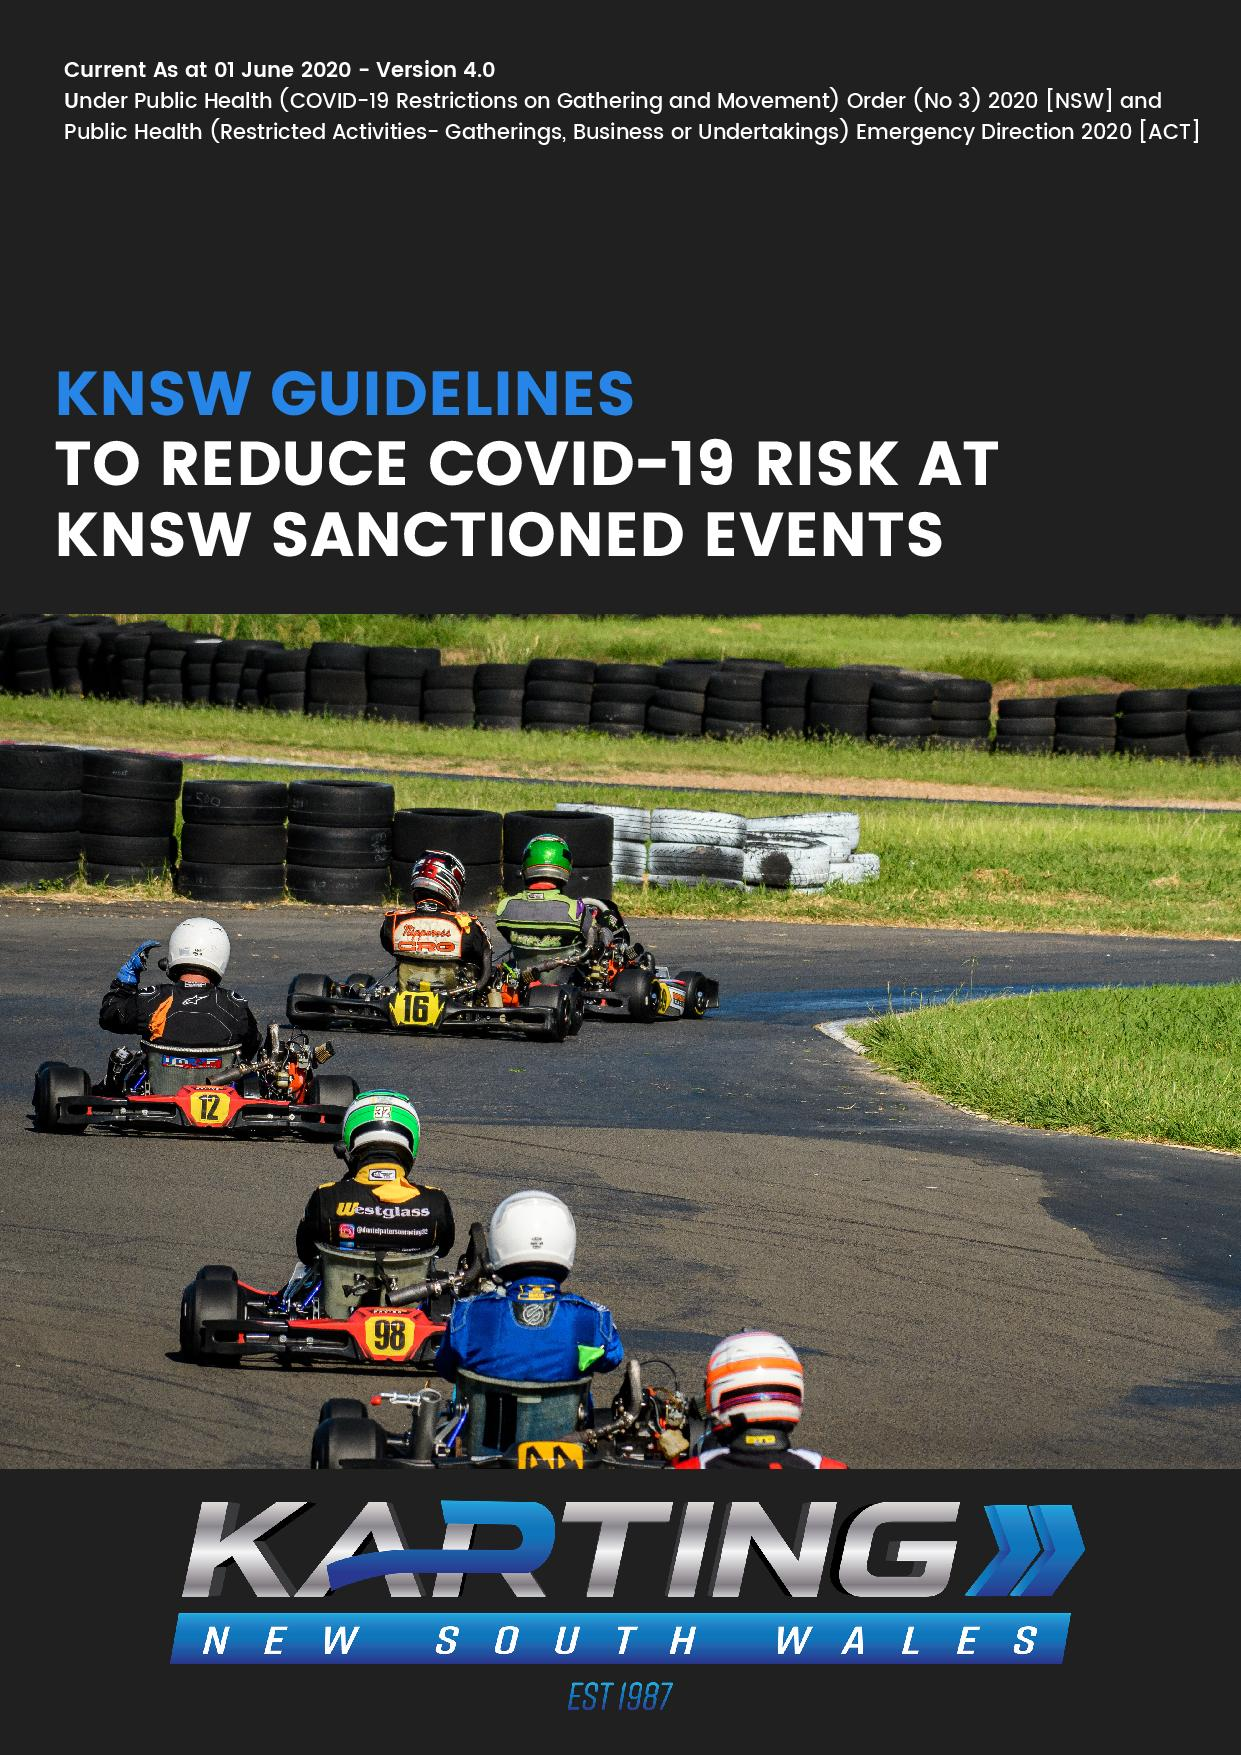 Karting New South Wales COVID-19 Guidelines